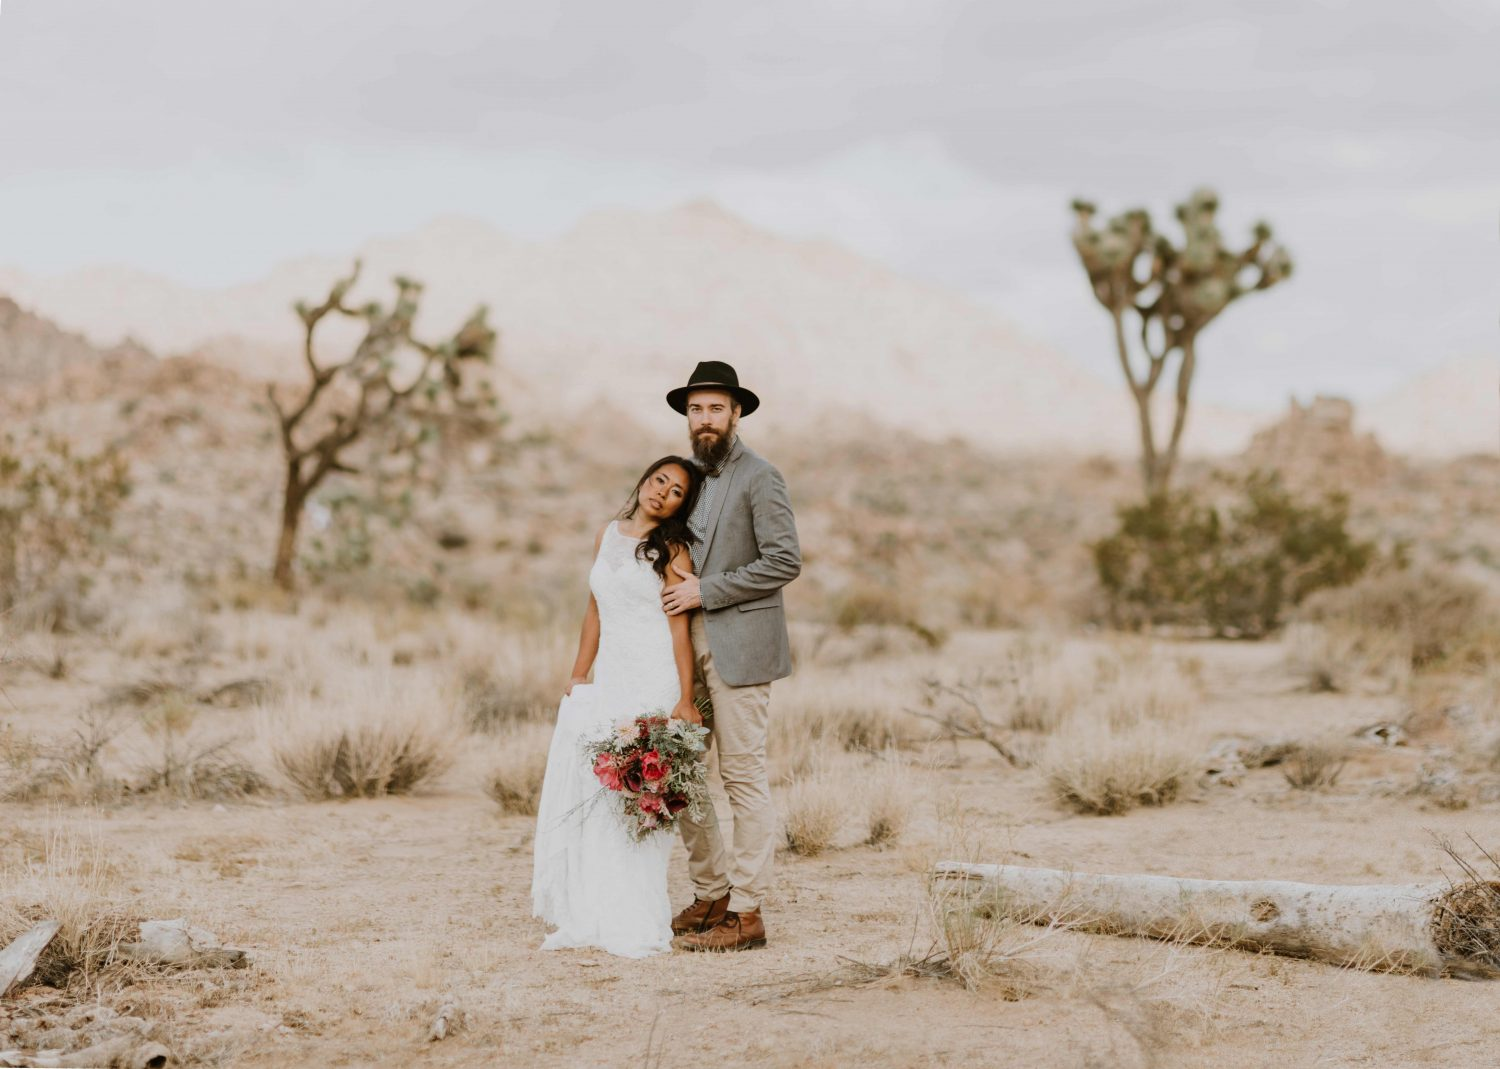 beautiful bride and groom standing together in joshua tree national park